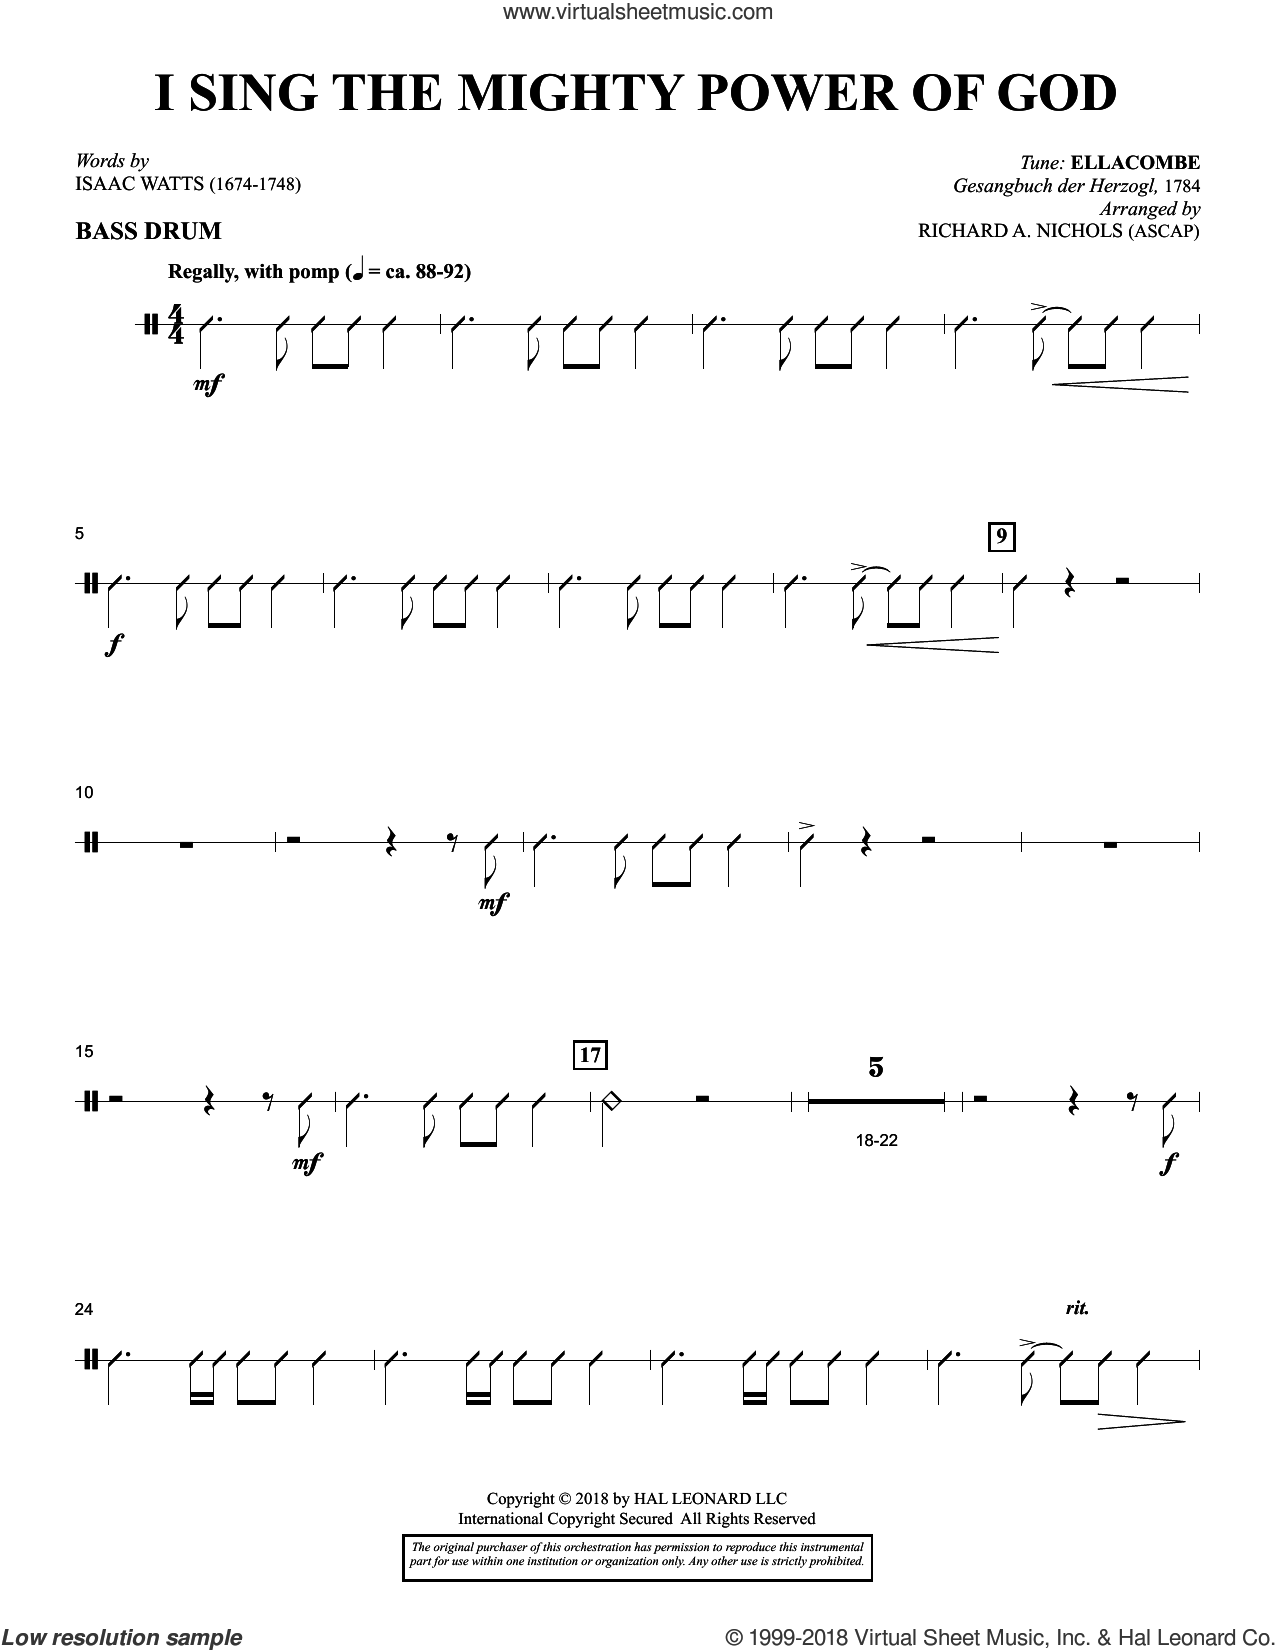 I Sing the Mighty Power of God (arr. Richard Nichols) sheet music for orchestra/band (bass drum) by Isaac Watts and Richard A. Nichols, intermediate skill level